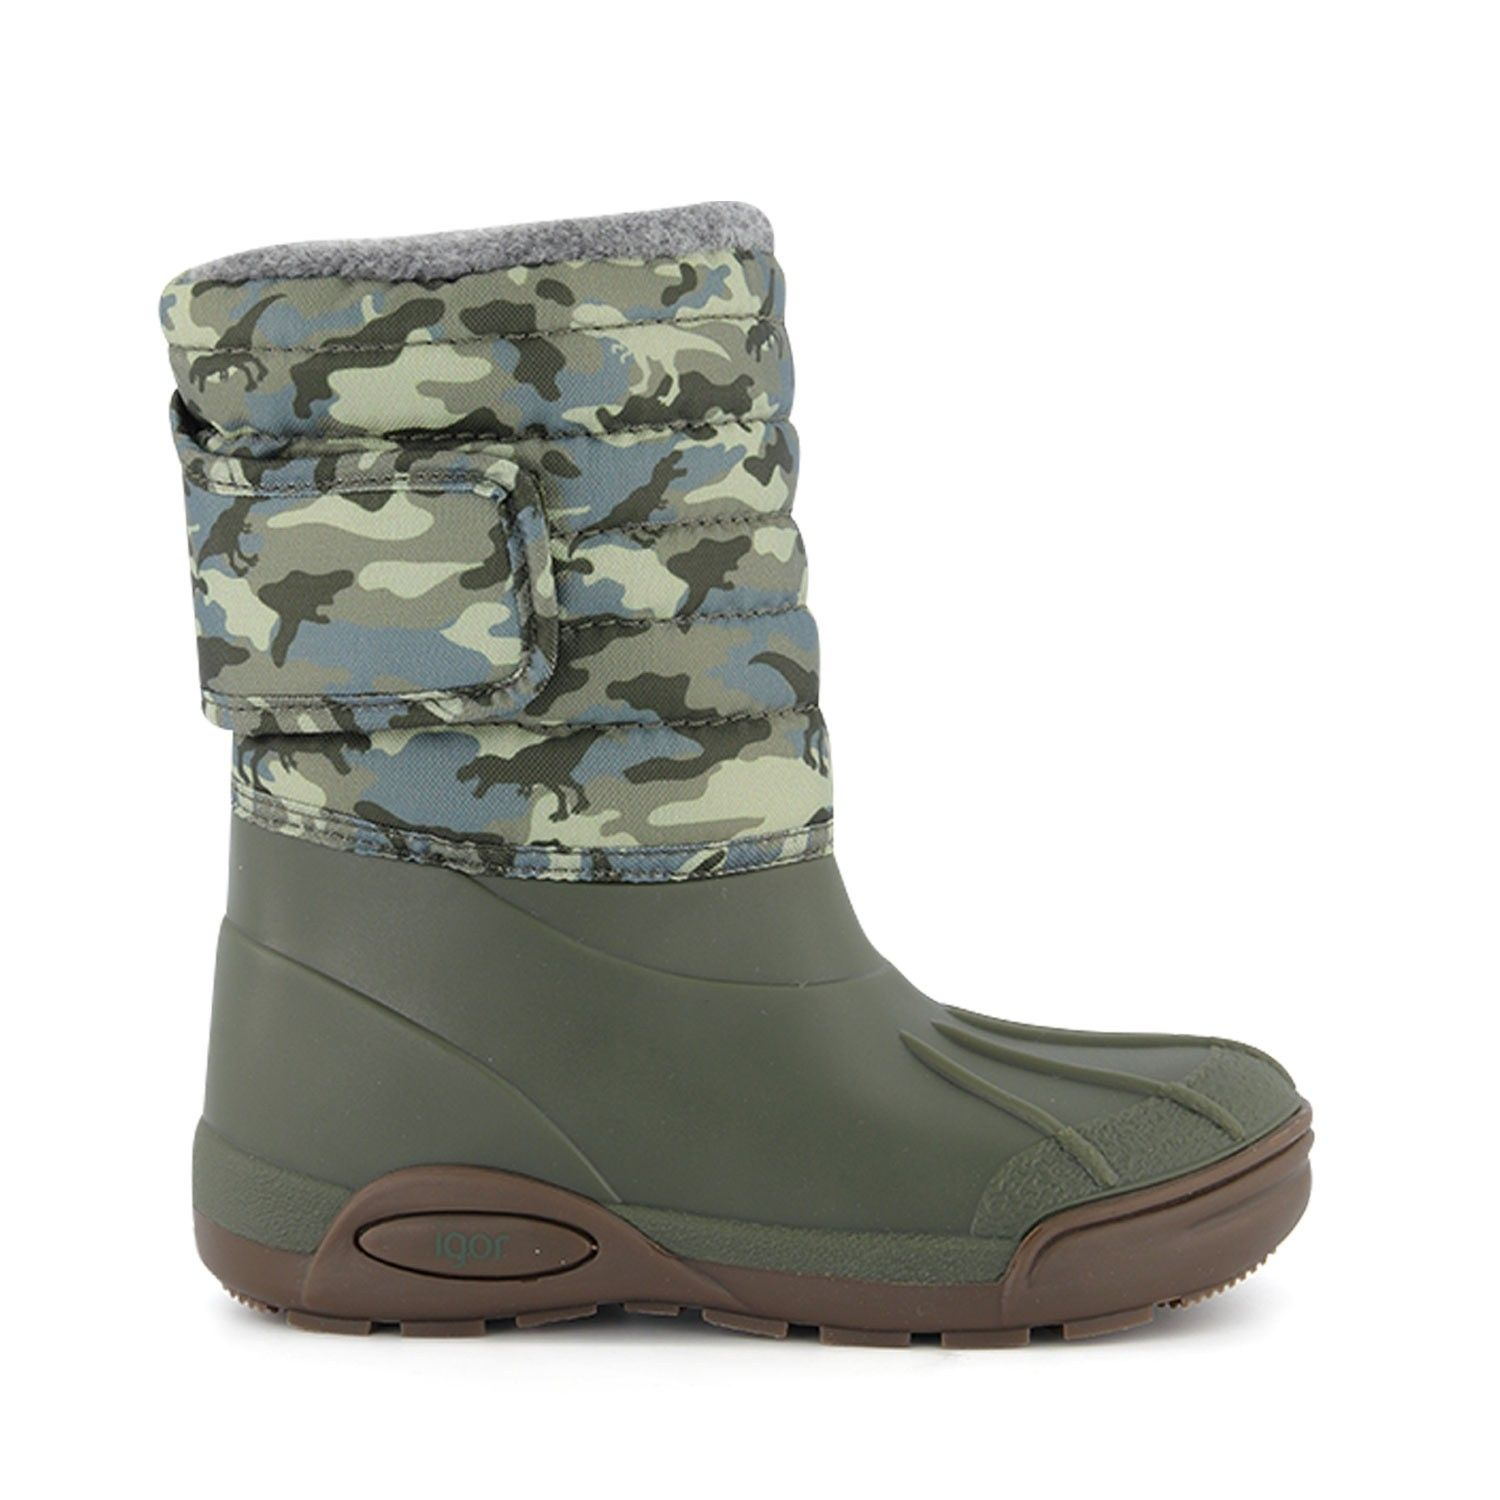 Picture of Igor W10210 kids boots army